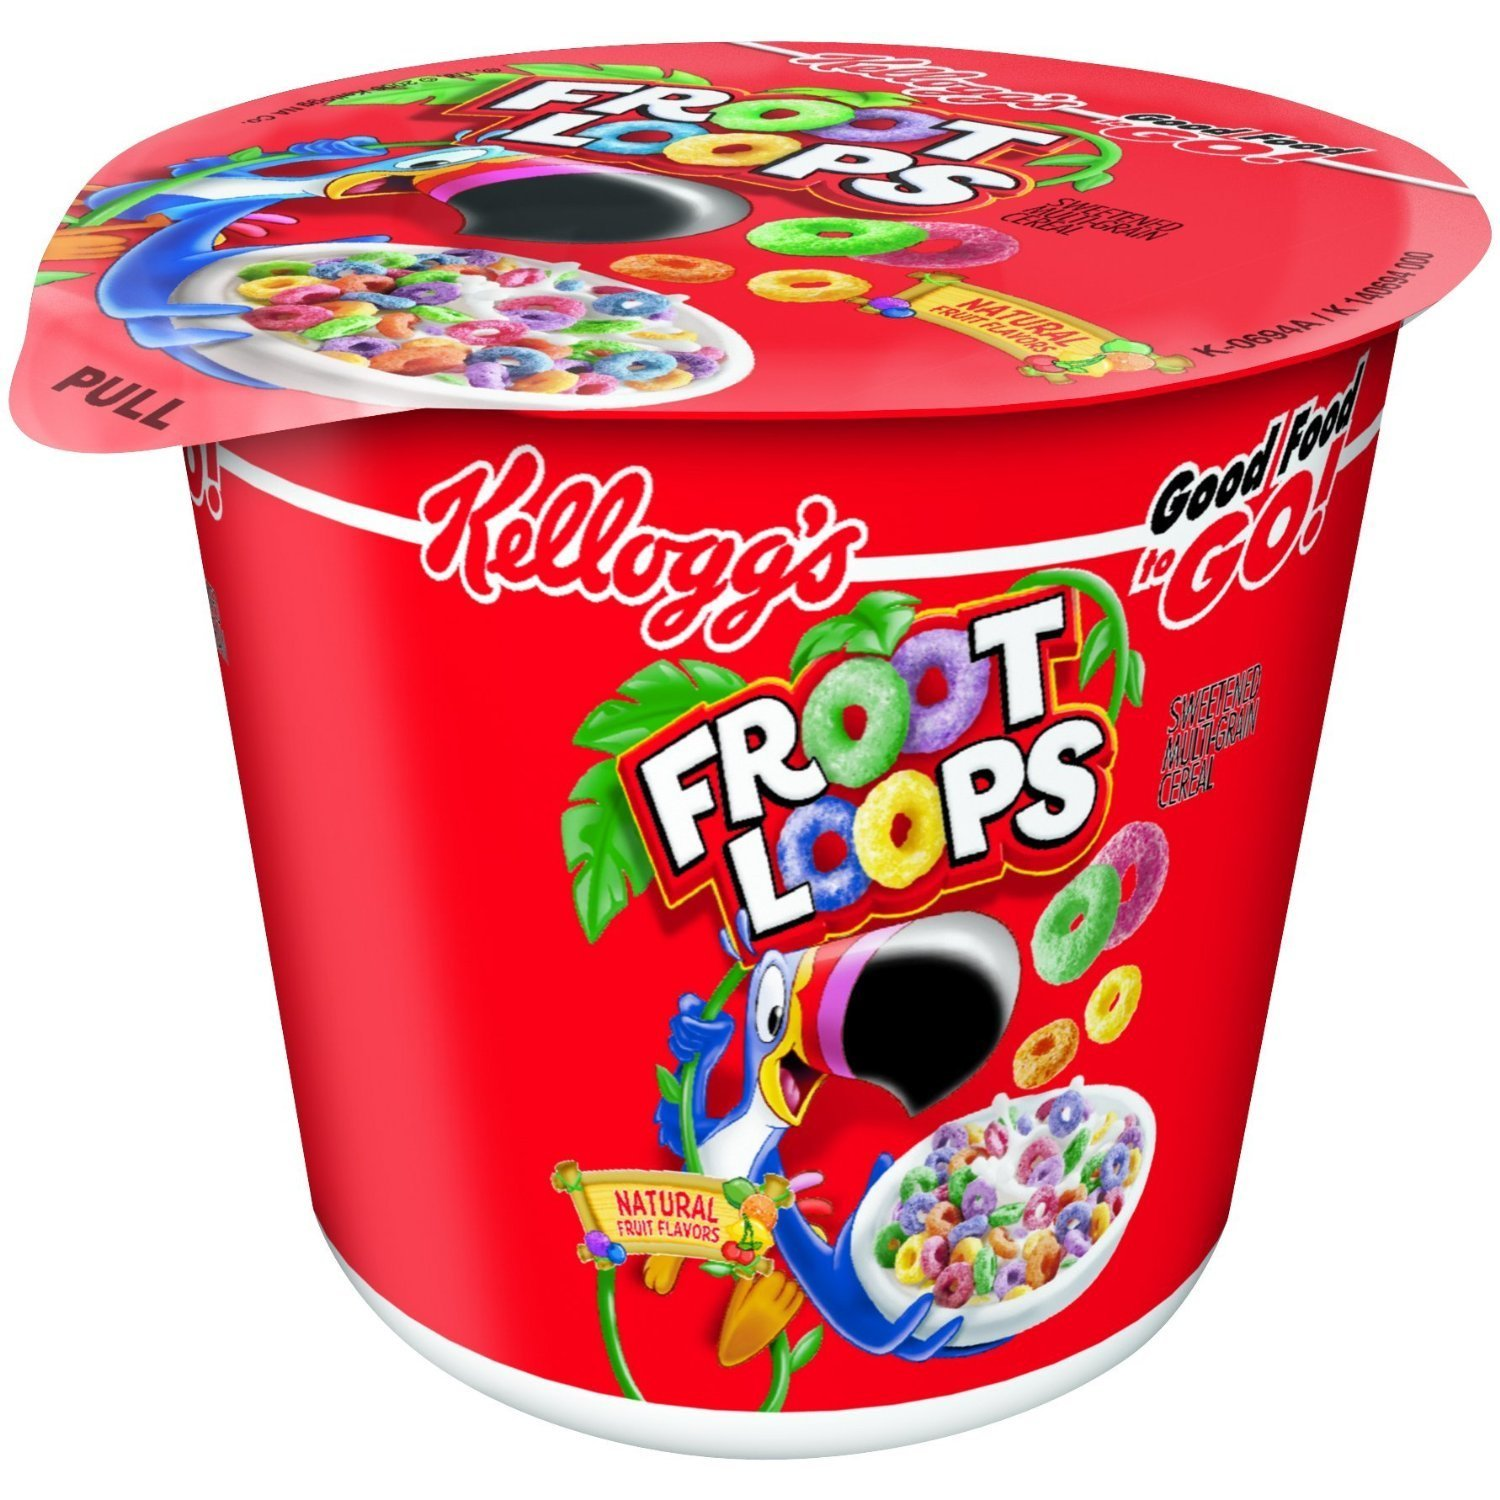 cheap froot loops nutrition facts, find froot loops nutrition facts